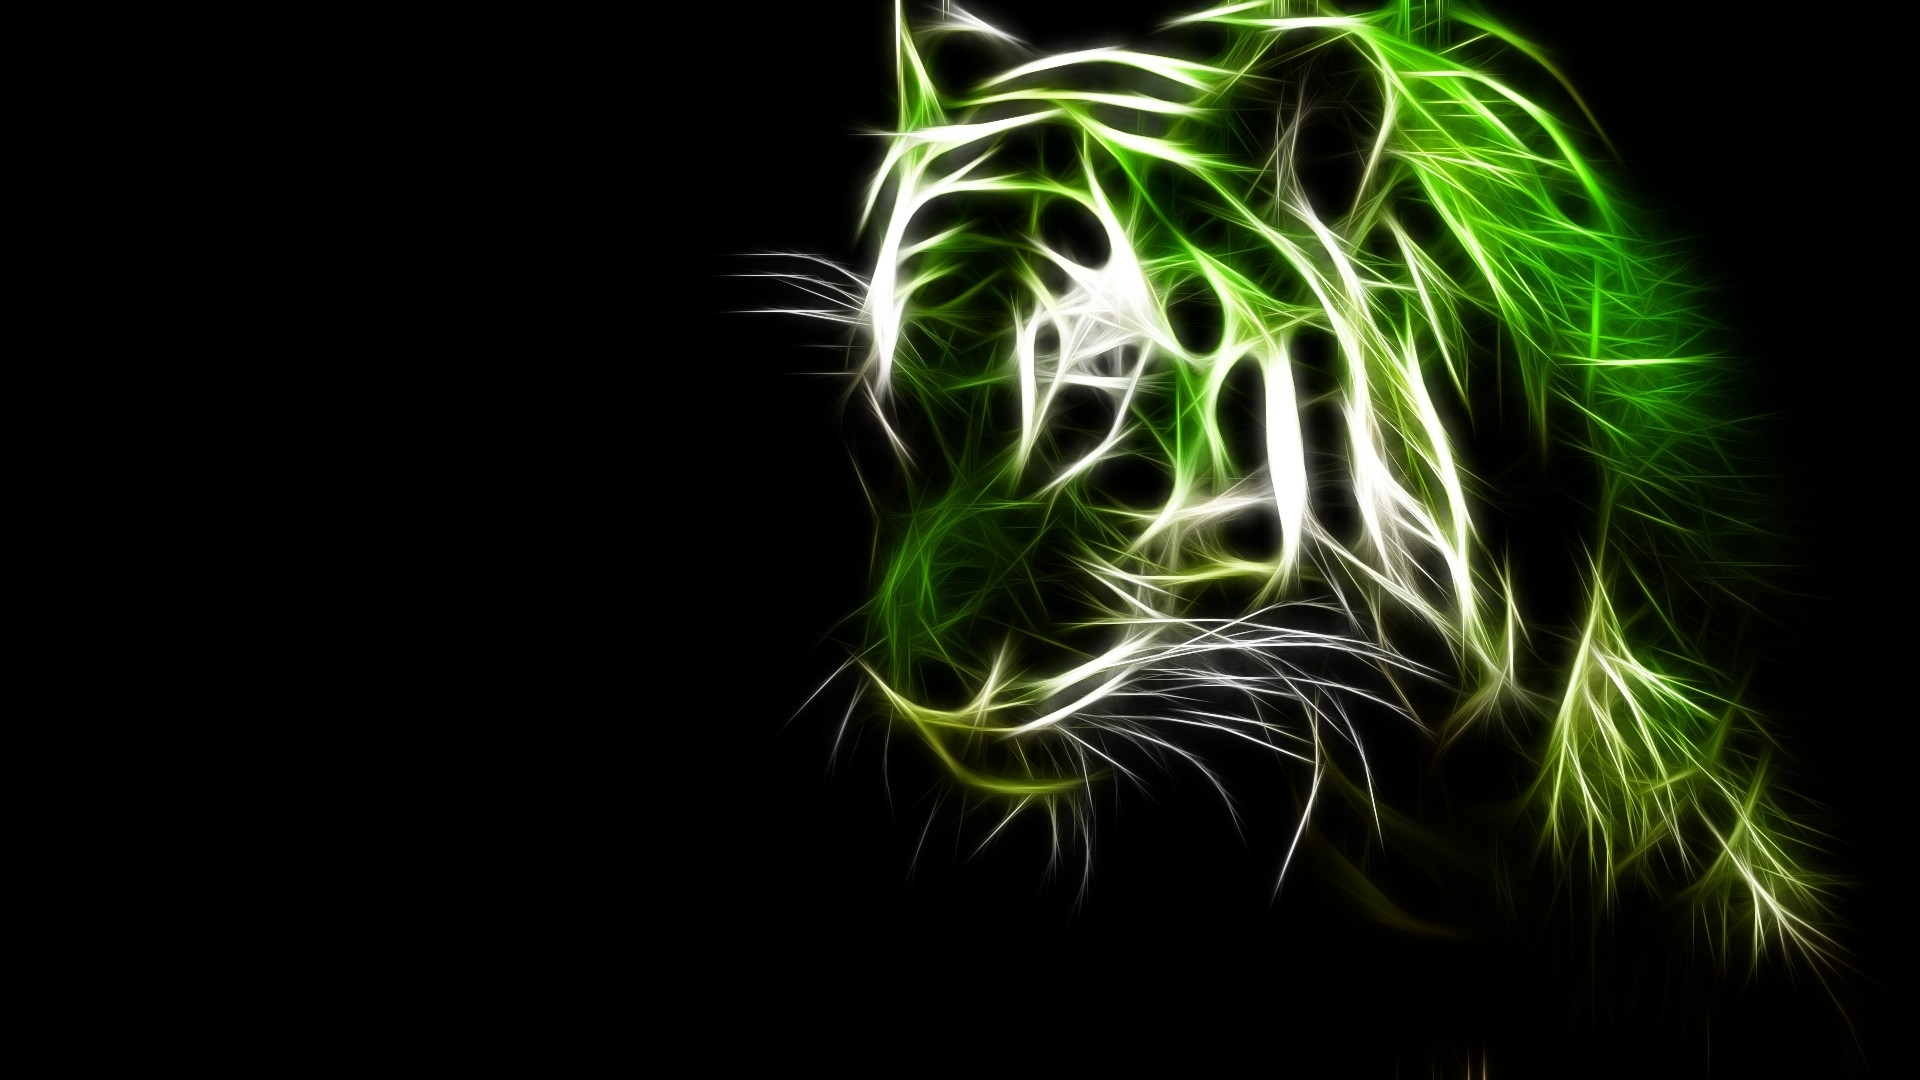 Black Wallpapers High Resolution: Black And Green Art Wallpaper 7 High Resolution Wallpaper